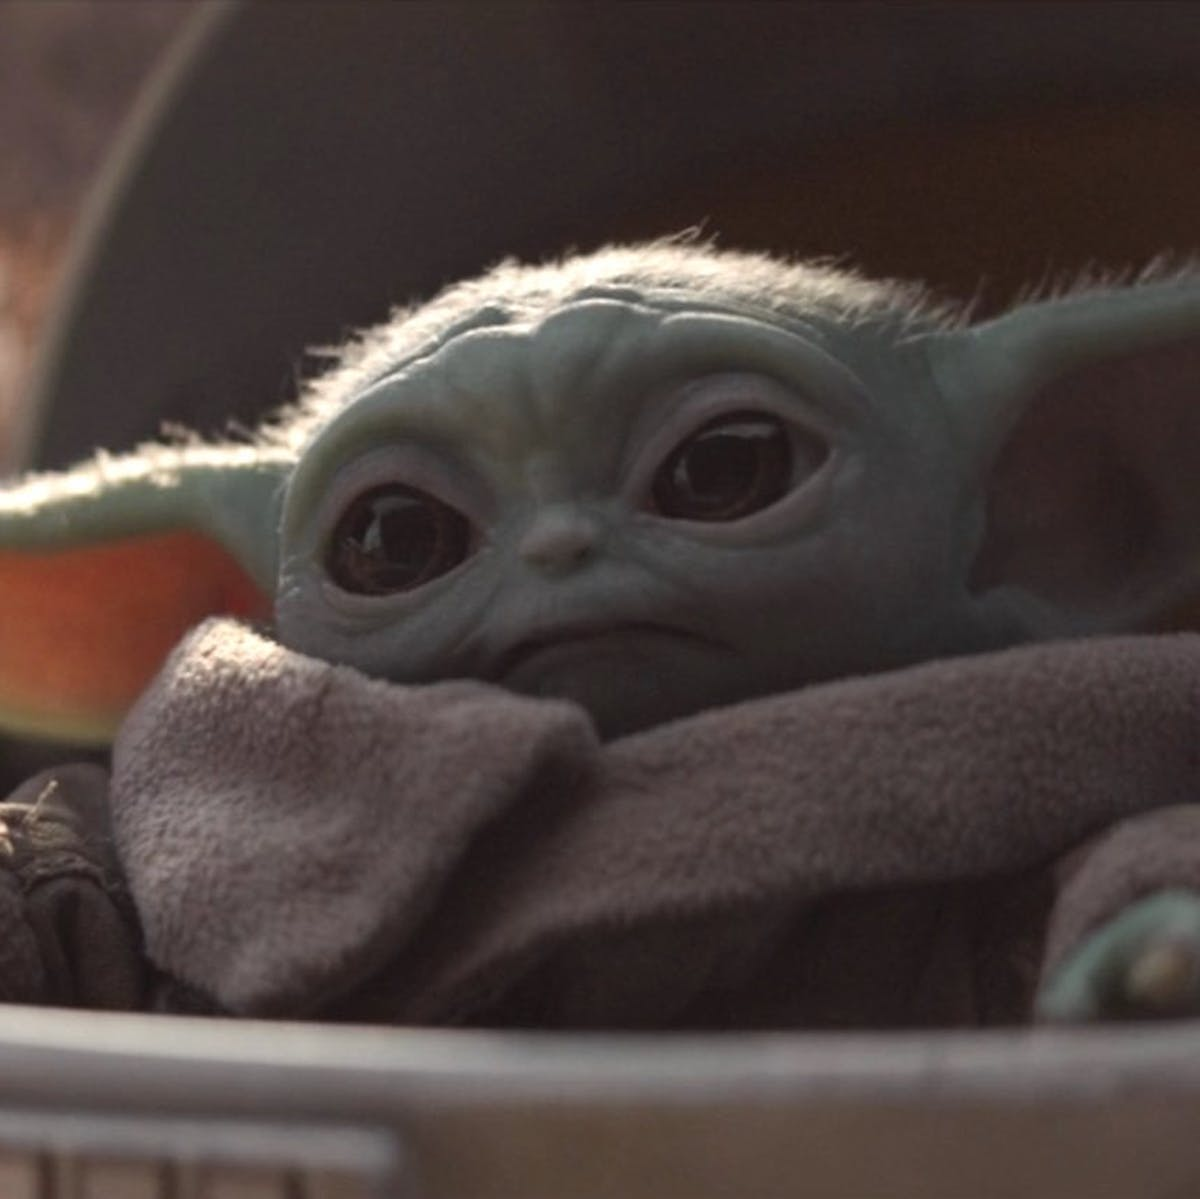 Baby Yoda could be key to 'Rise of Skywalker,' if he survives 'Mandalorian'